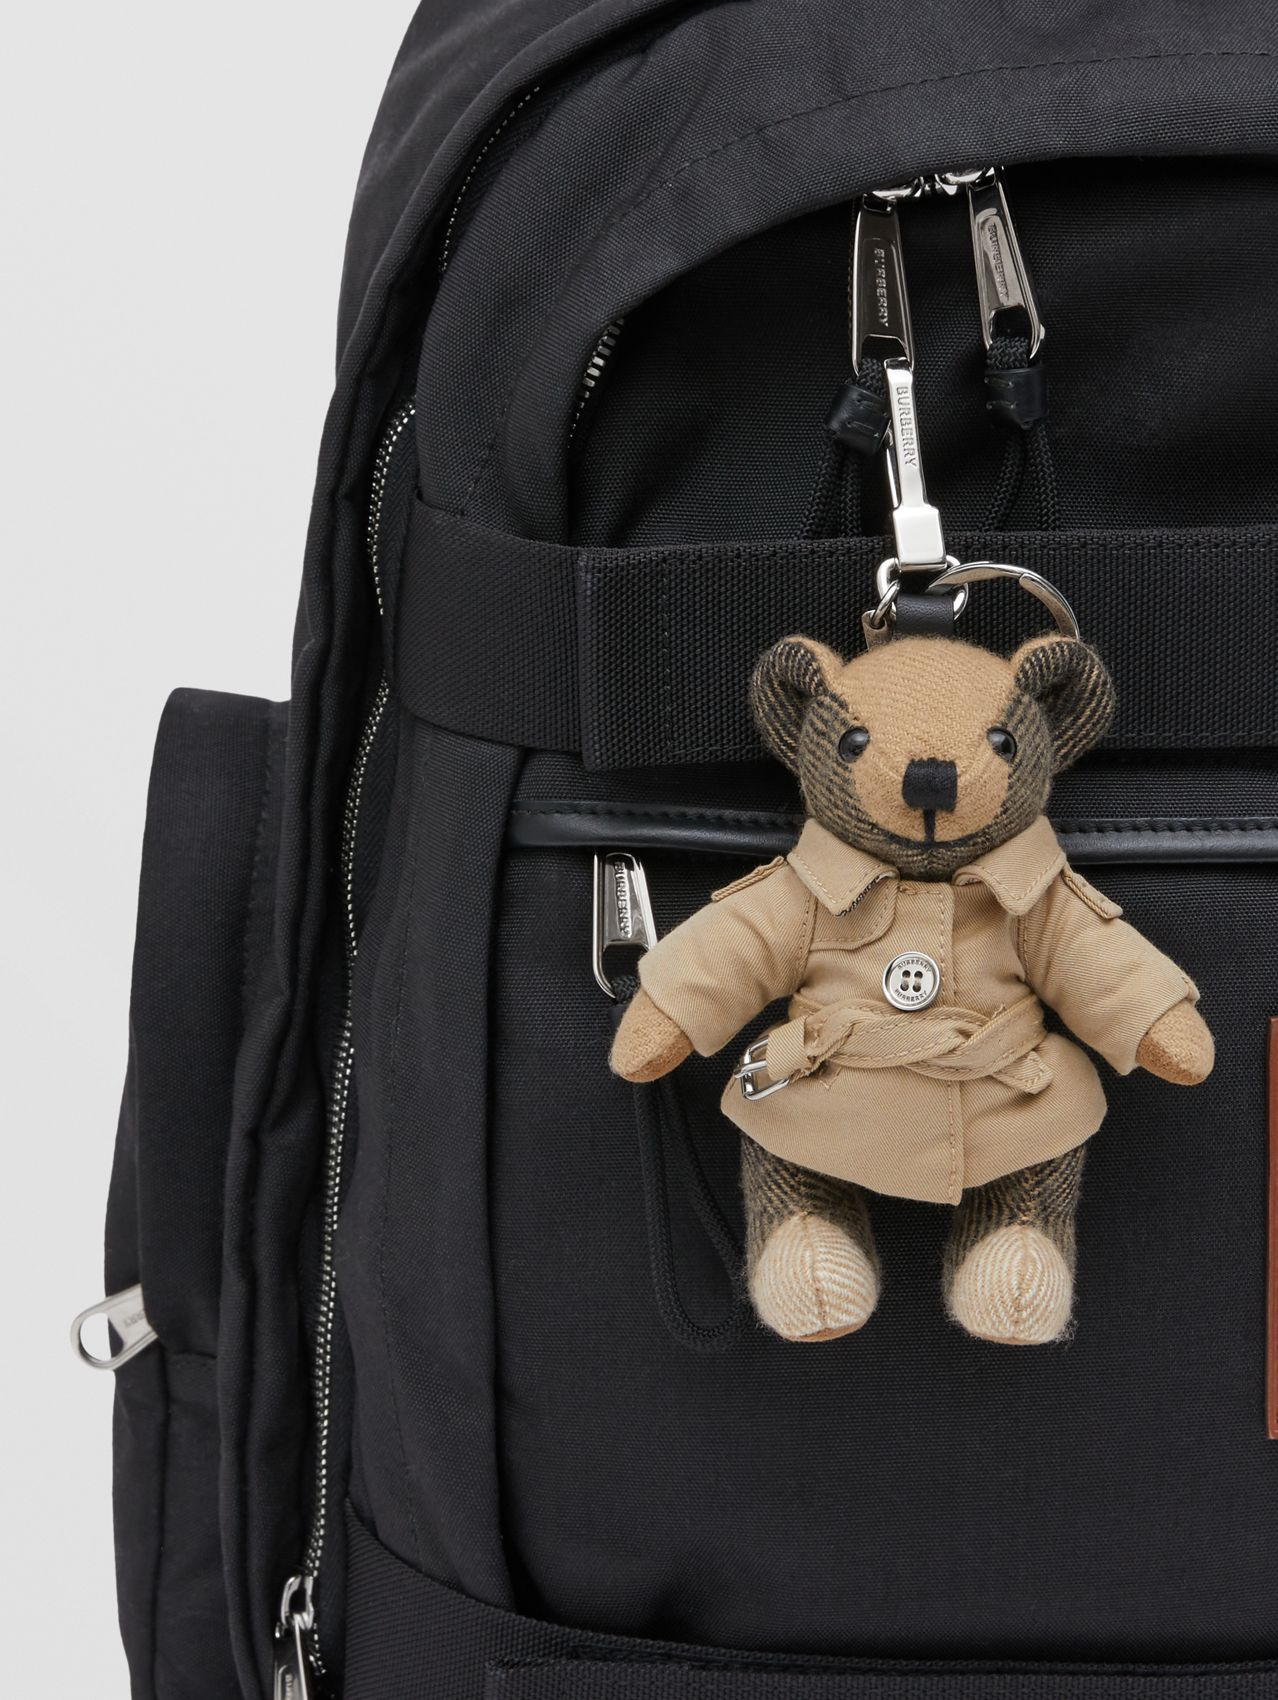 Thomas Bear Charm in Trench Coat (Archive Beige)